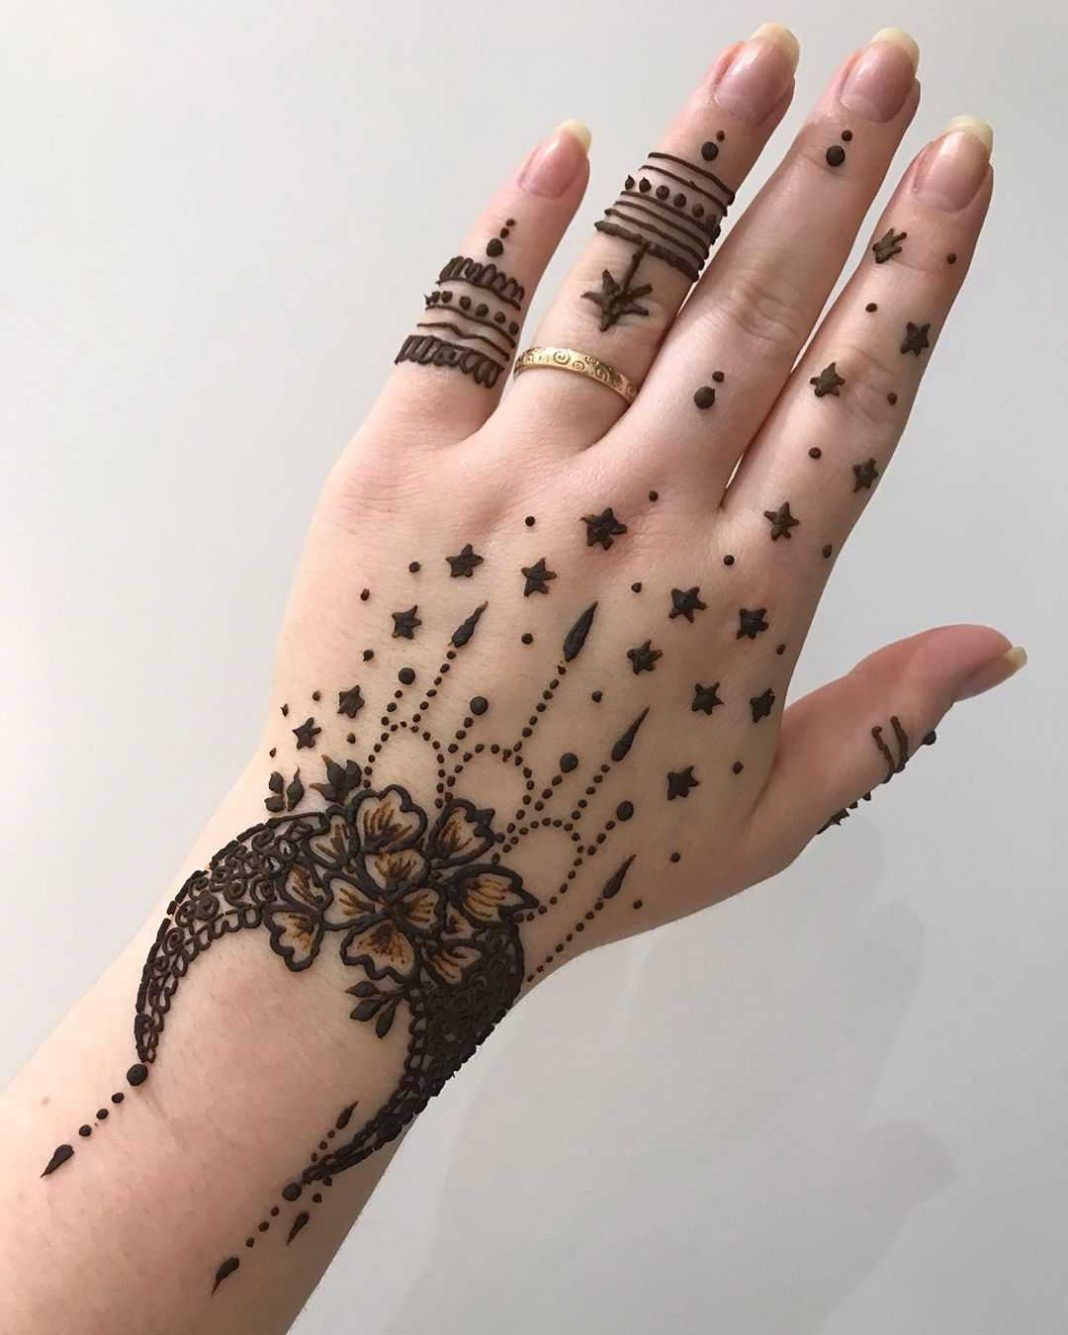 25+ Beautiful Eid Mehndi Designs 2019  Images & Videos is part of Eid mehndi designs, Mehndi art designs, Mehndi designs for fingers, Bridal henna designs, Modern mehndi designs, Mehndi designs 2018 - After the holy month of fasting comes Eid ulFitr, a festival of cheerfulness, spirituality and feast  It is celebrated with the utmost fervour, lots of de